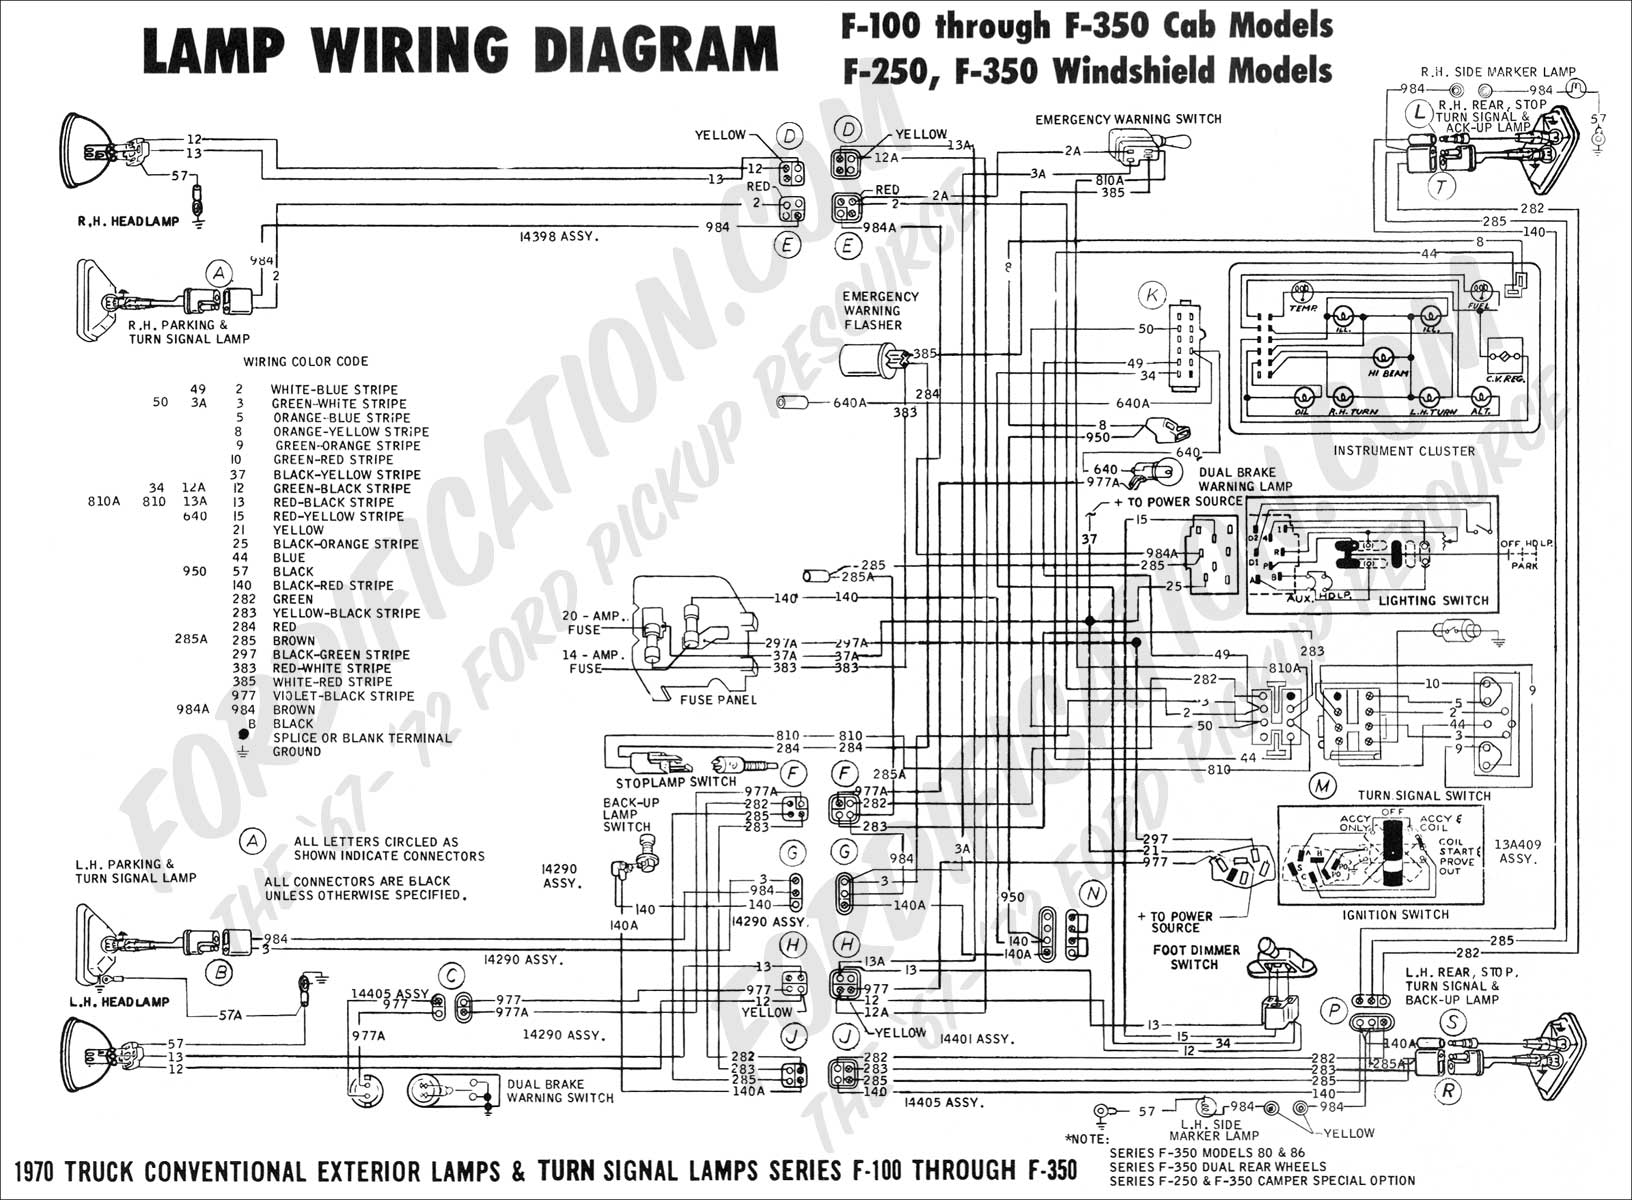 wiring diagram_70ext lights01 ford truck technical drawings and schematics section h wiring 1998 ford f150 wiring diagram at reclaimingppi.co